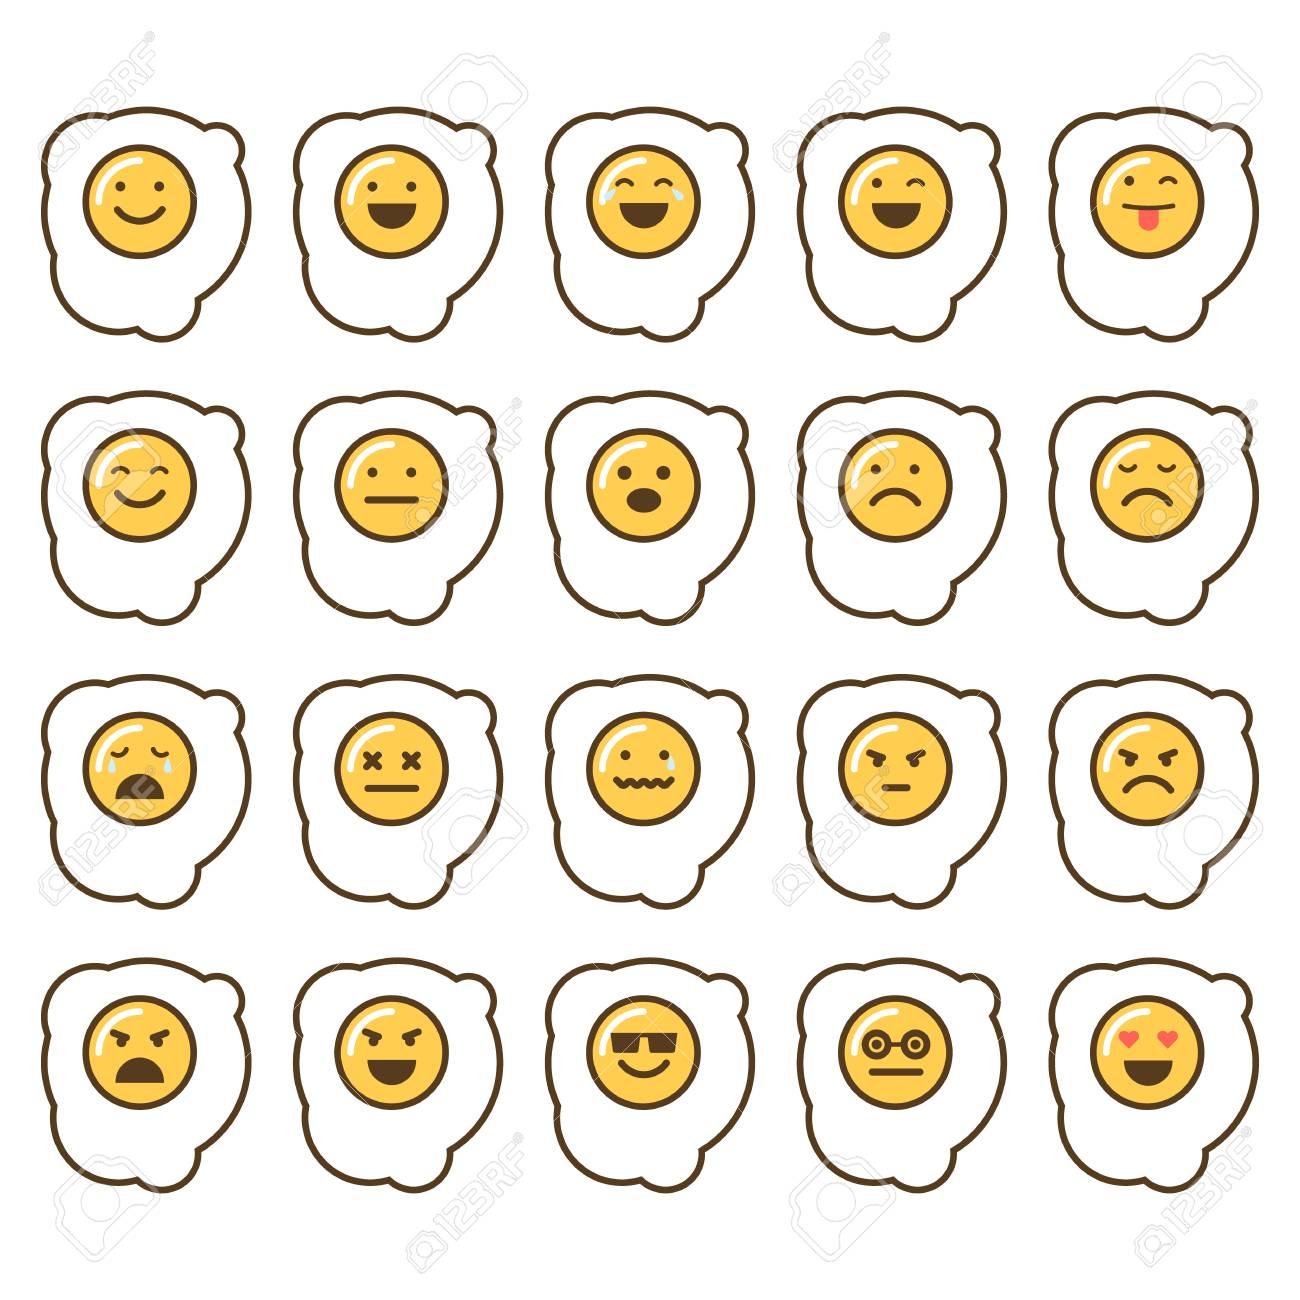 Vector icons set of emoji in the shape of scrambbled eggs on